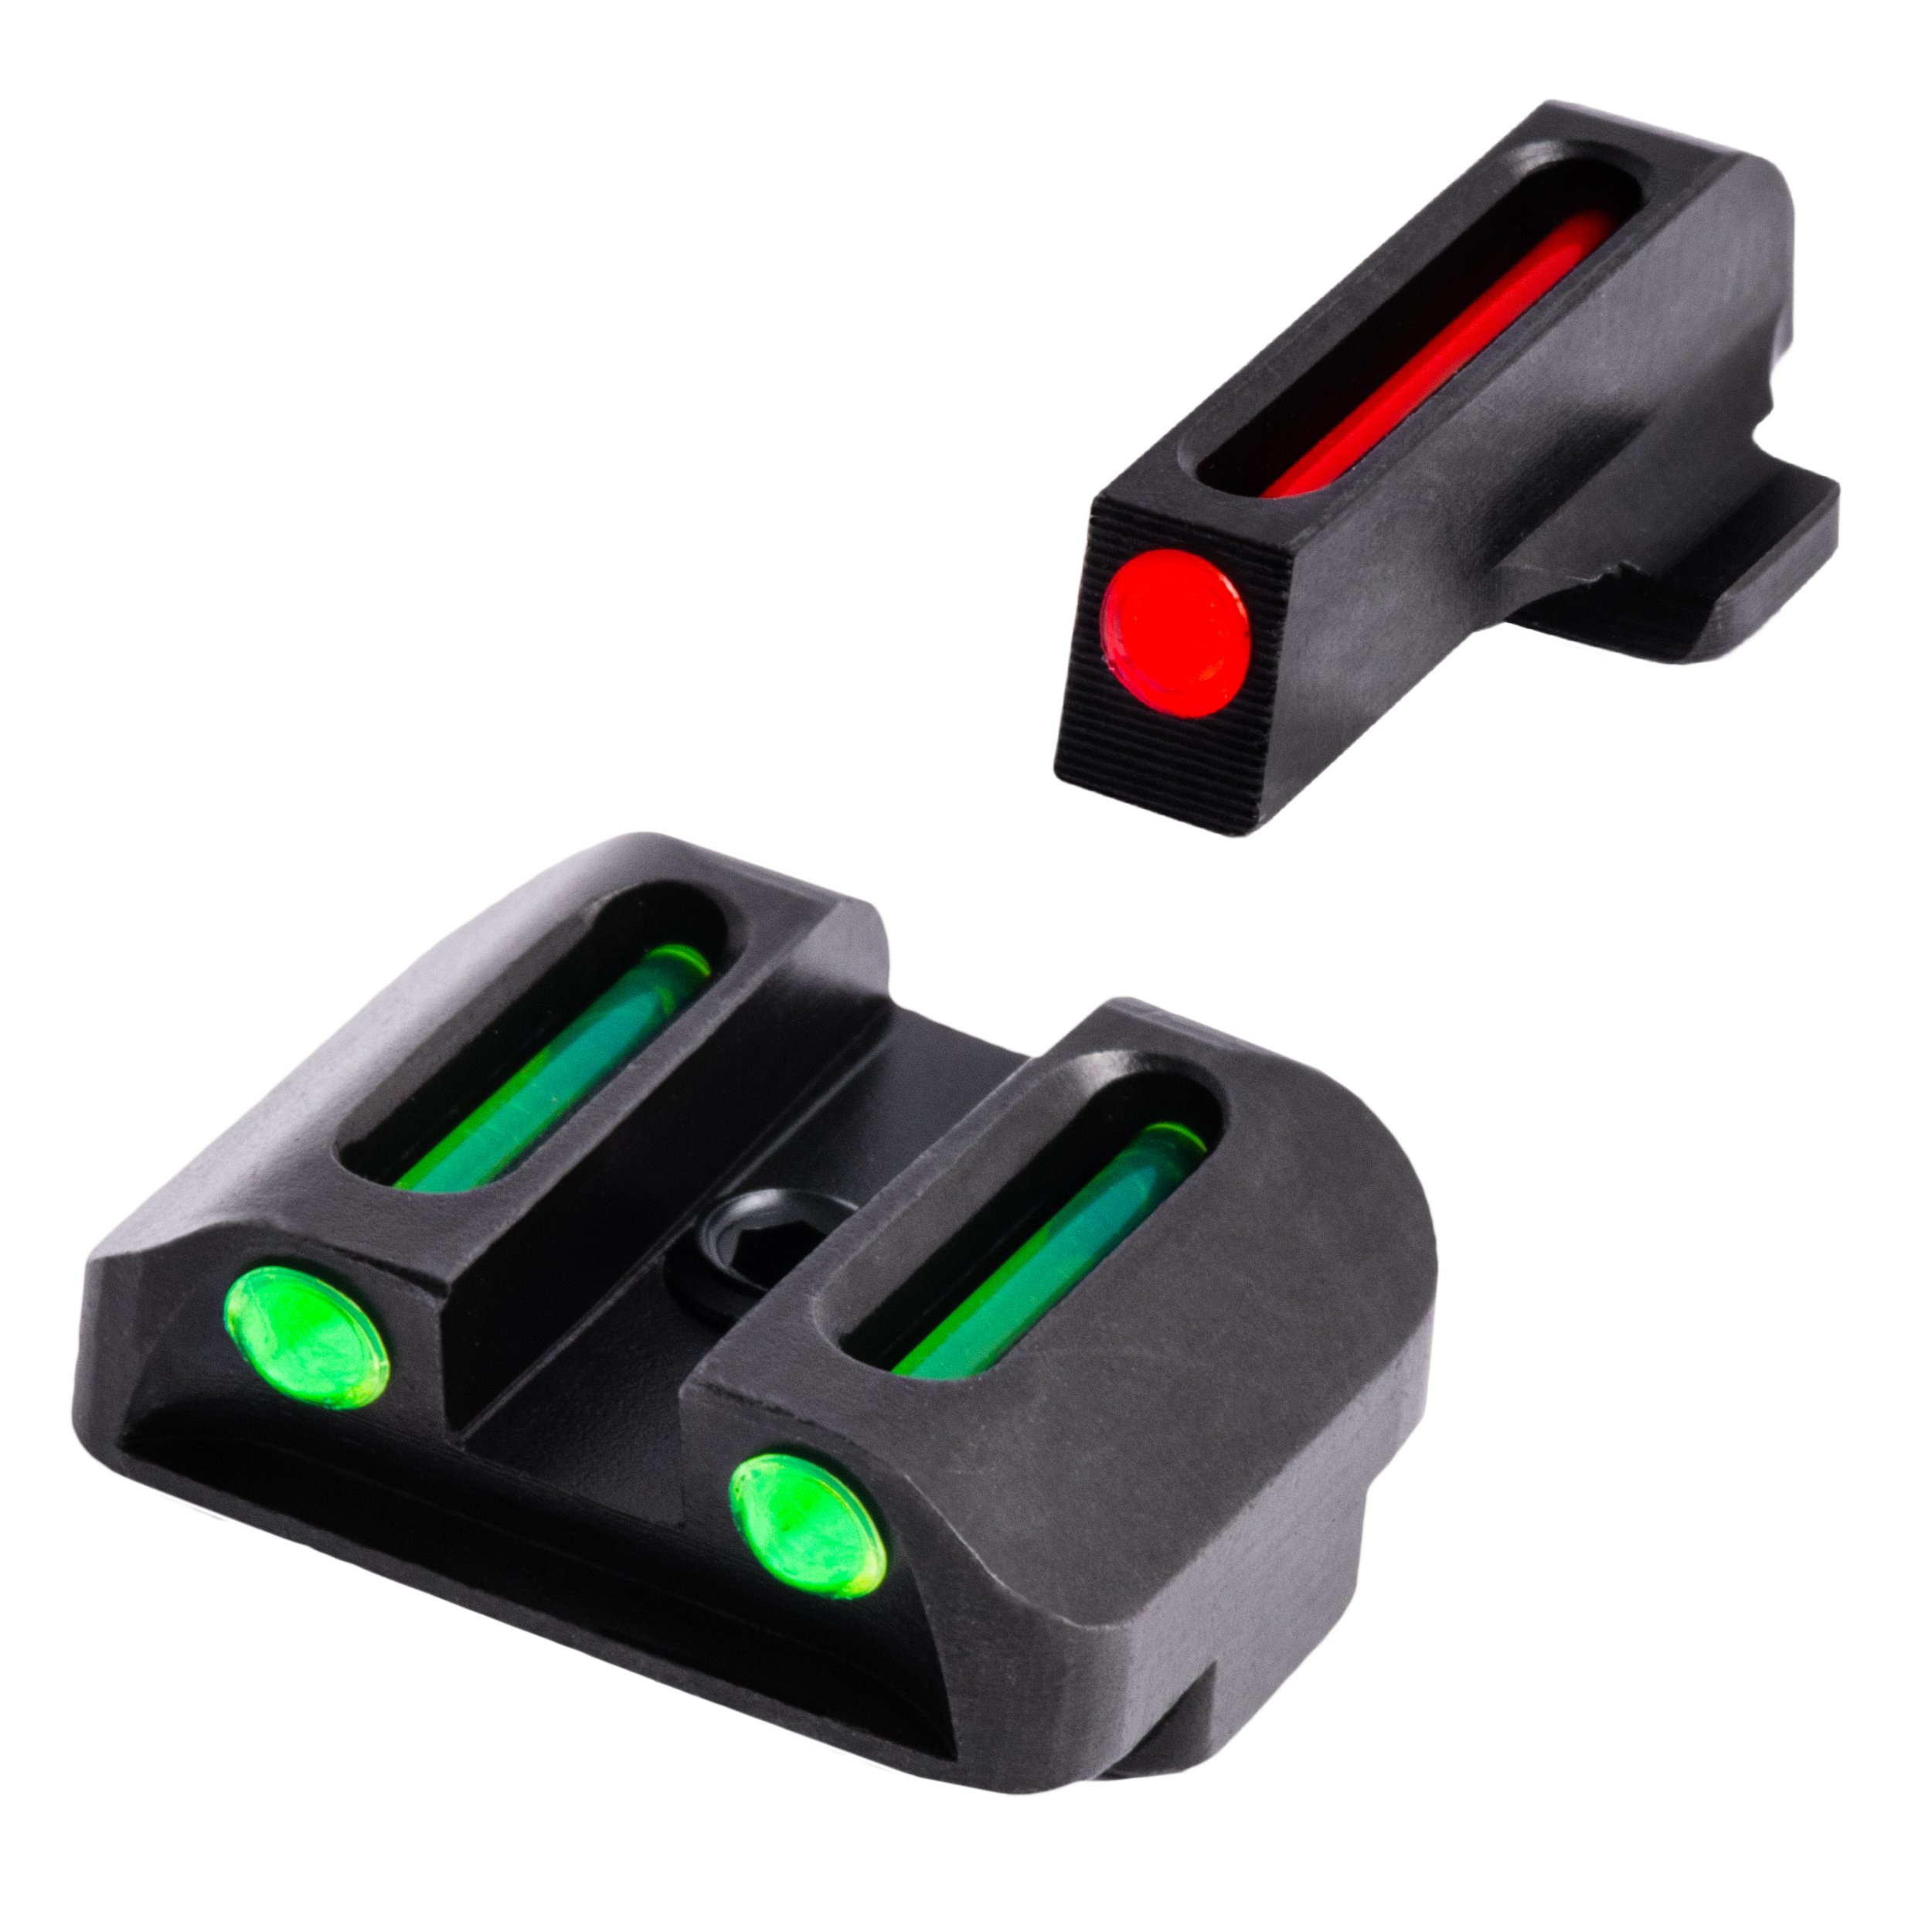 TRUGLO Fiber-Optic Front and Rear Handgun Sights for Springfield XD, XDM (excluding 5.25'' Comp Series) and XDS